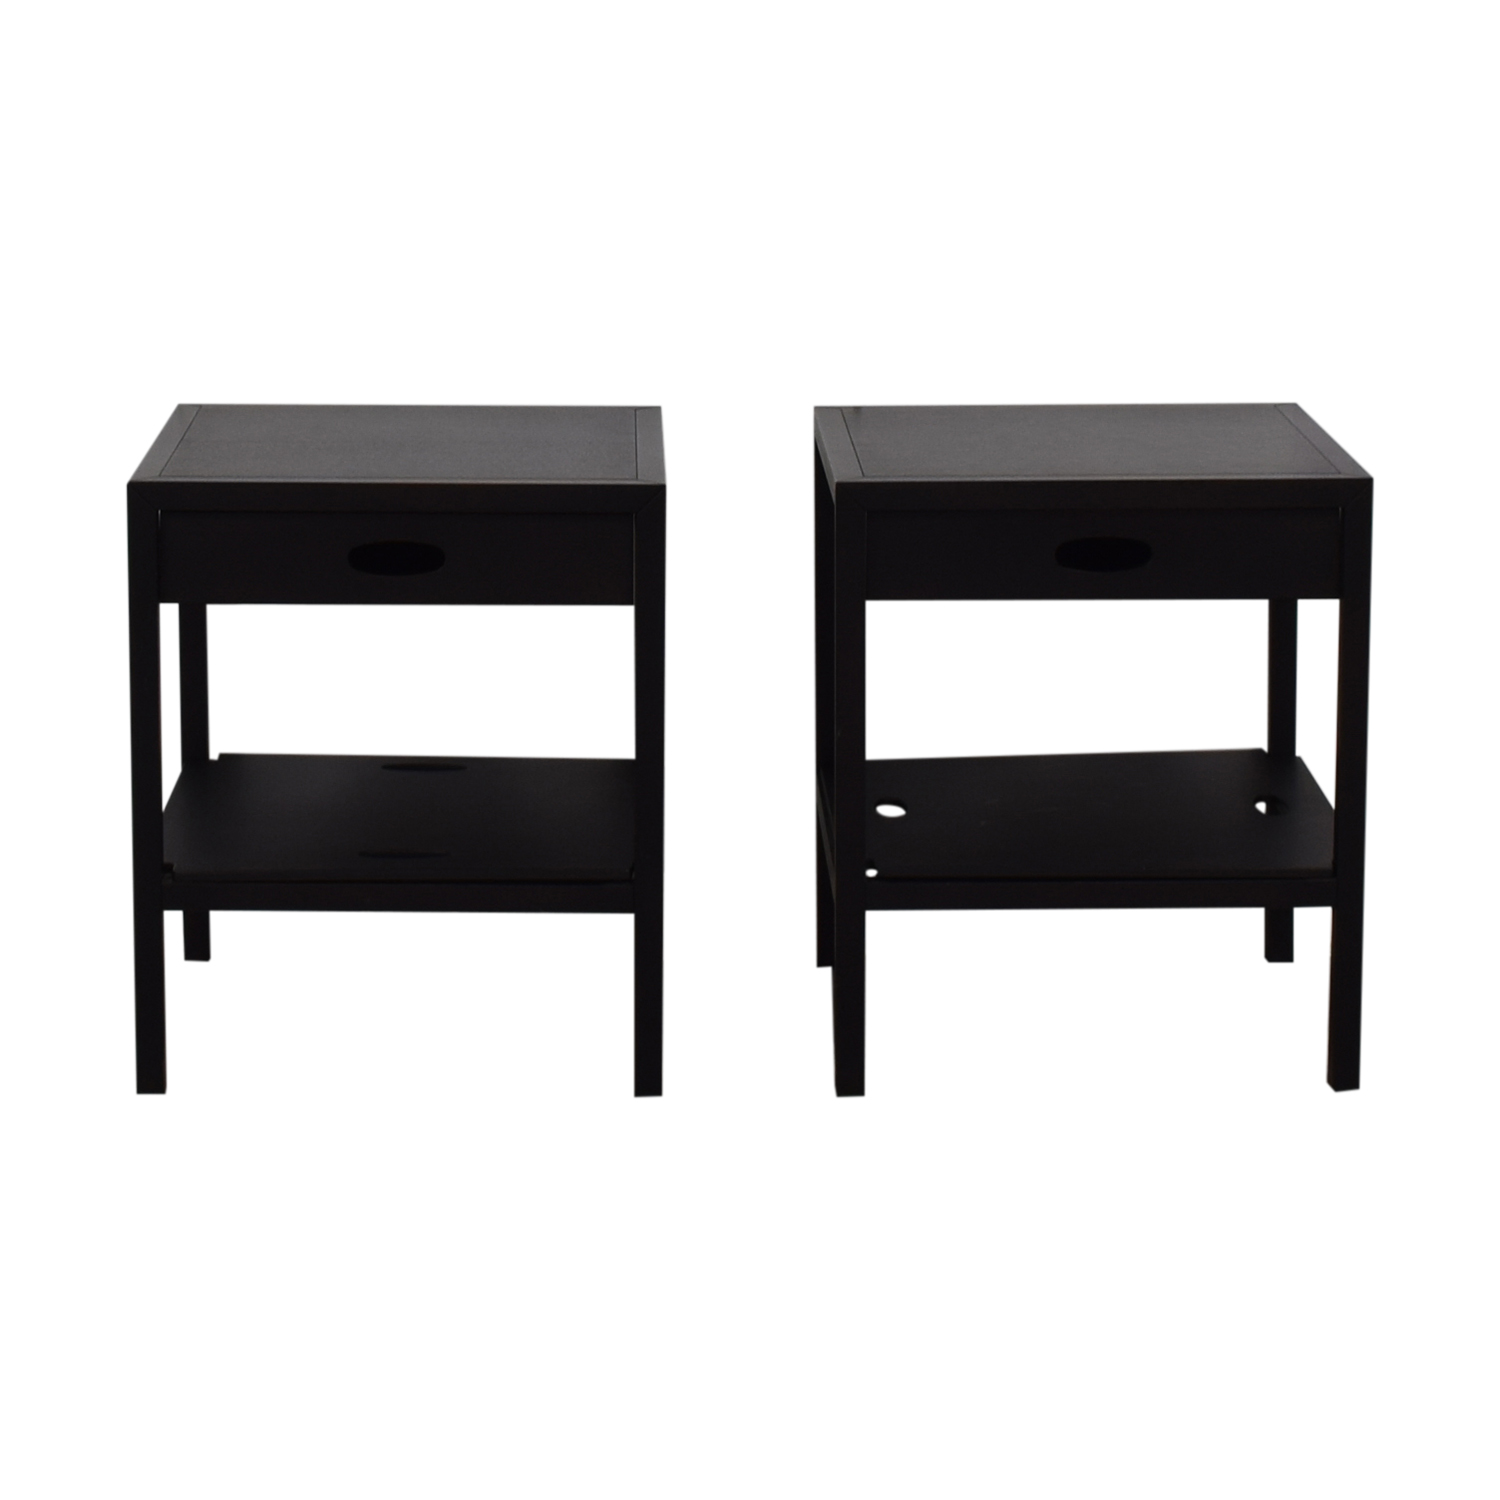 Spigoline Spigoline Black Single Drawer Wenge End Tables discount